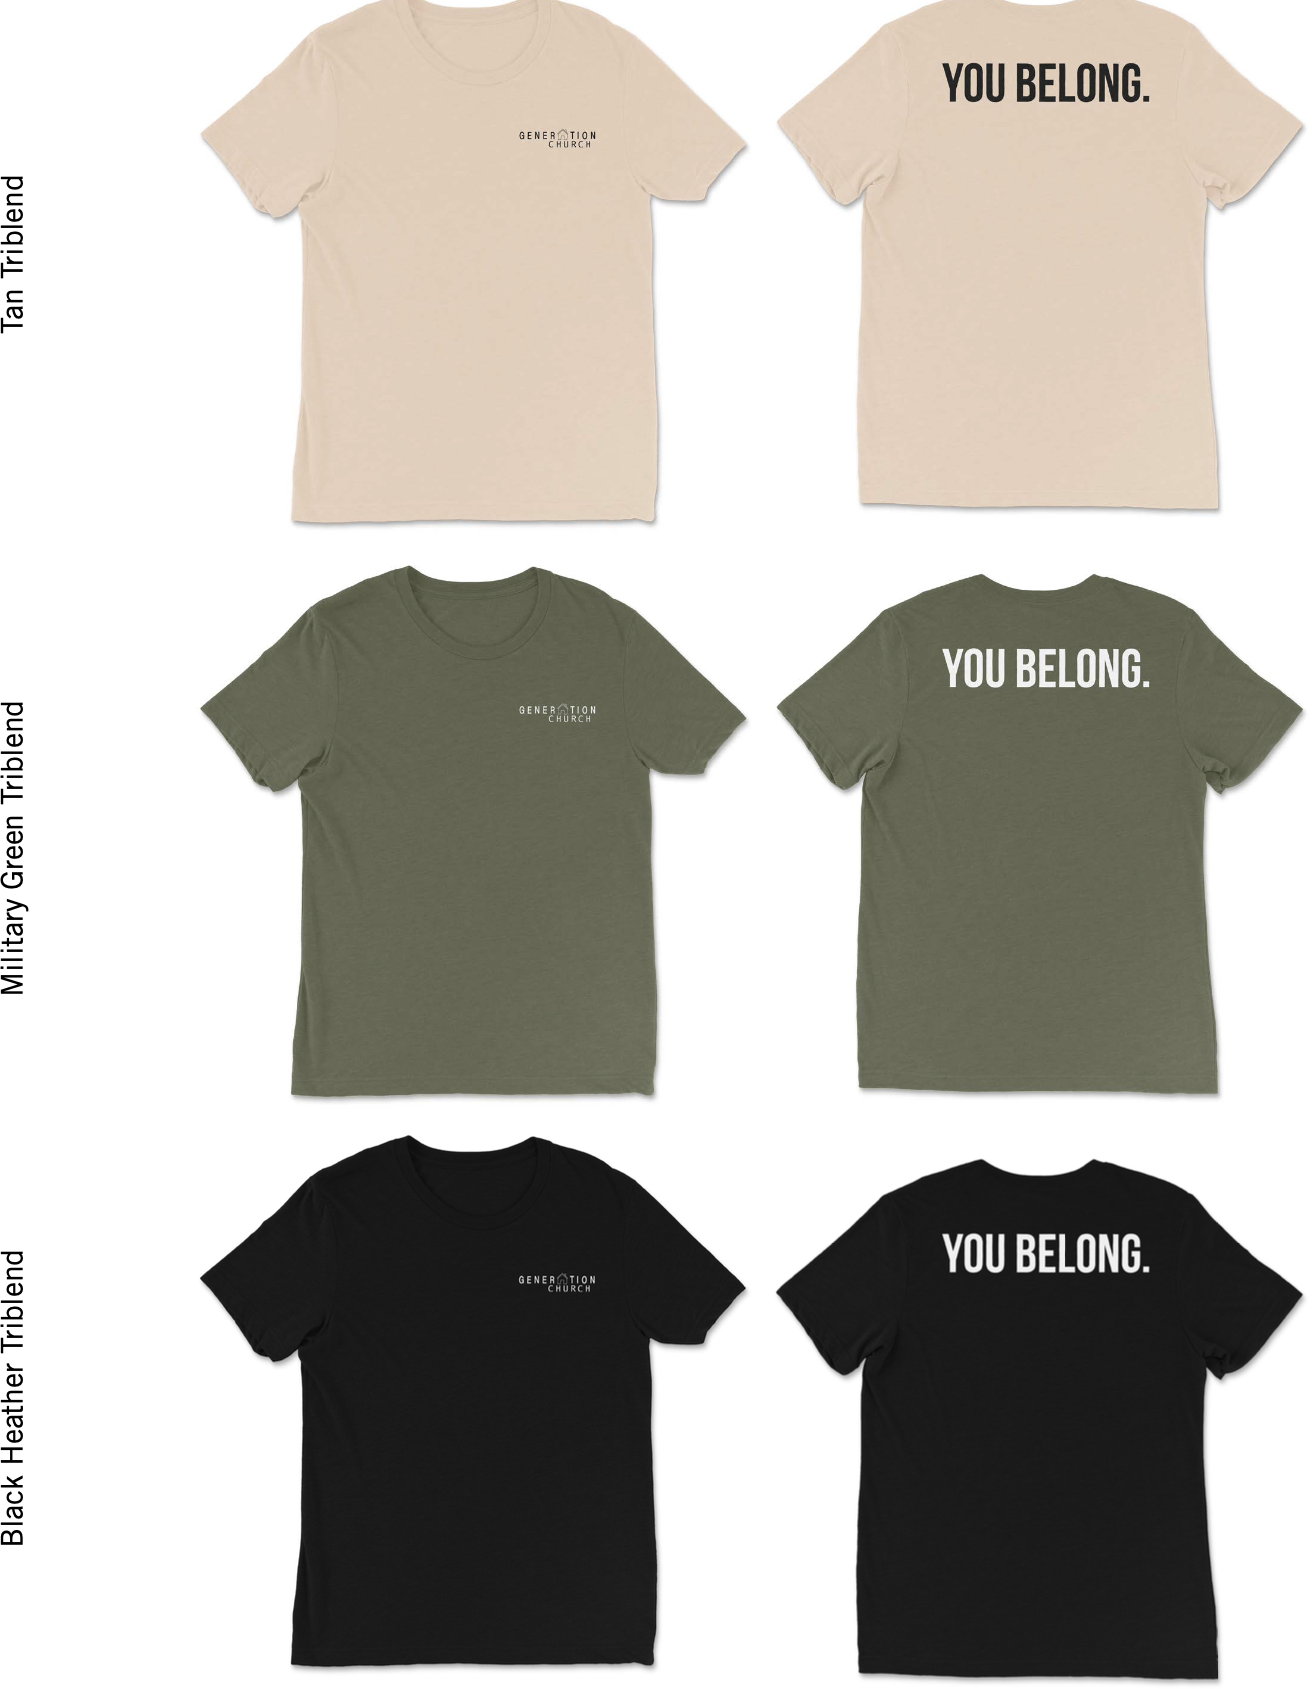 Check out our You Belong Triblend T's